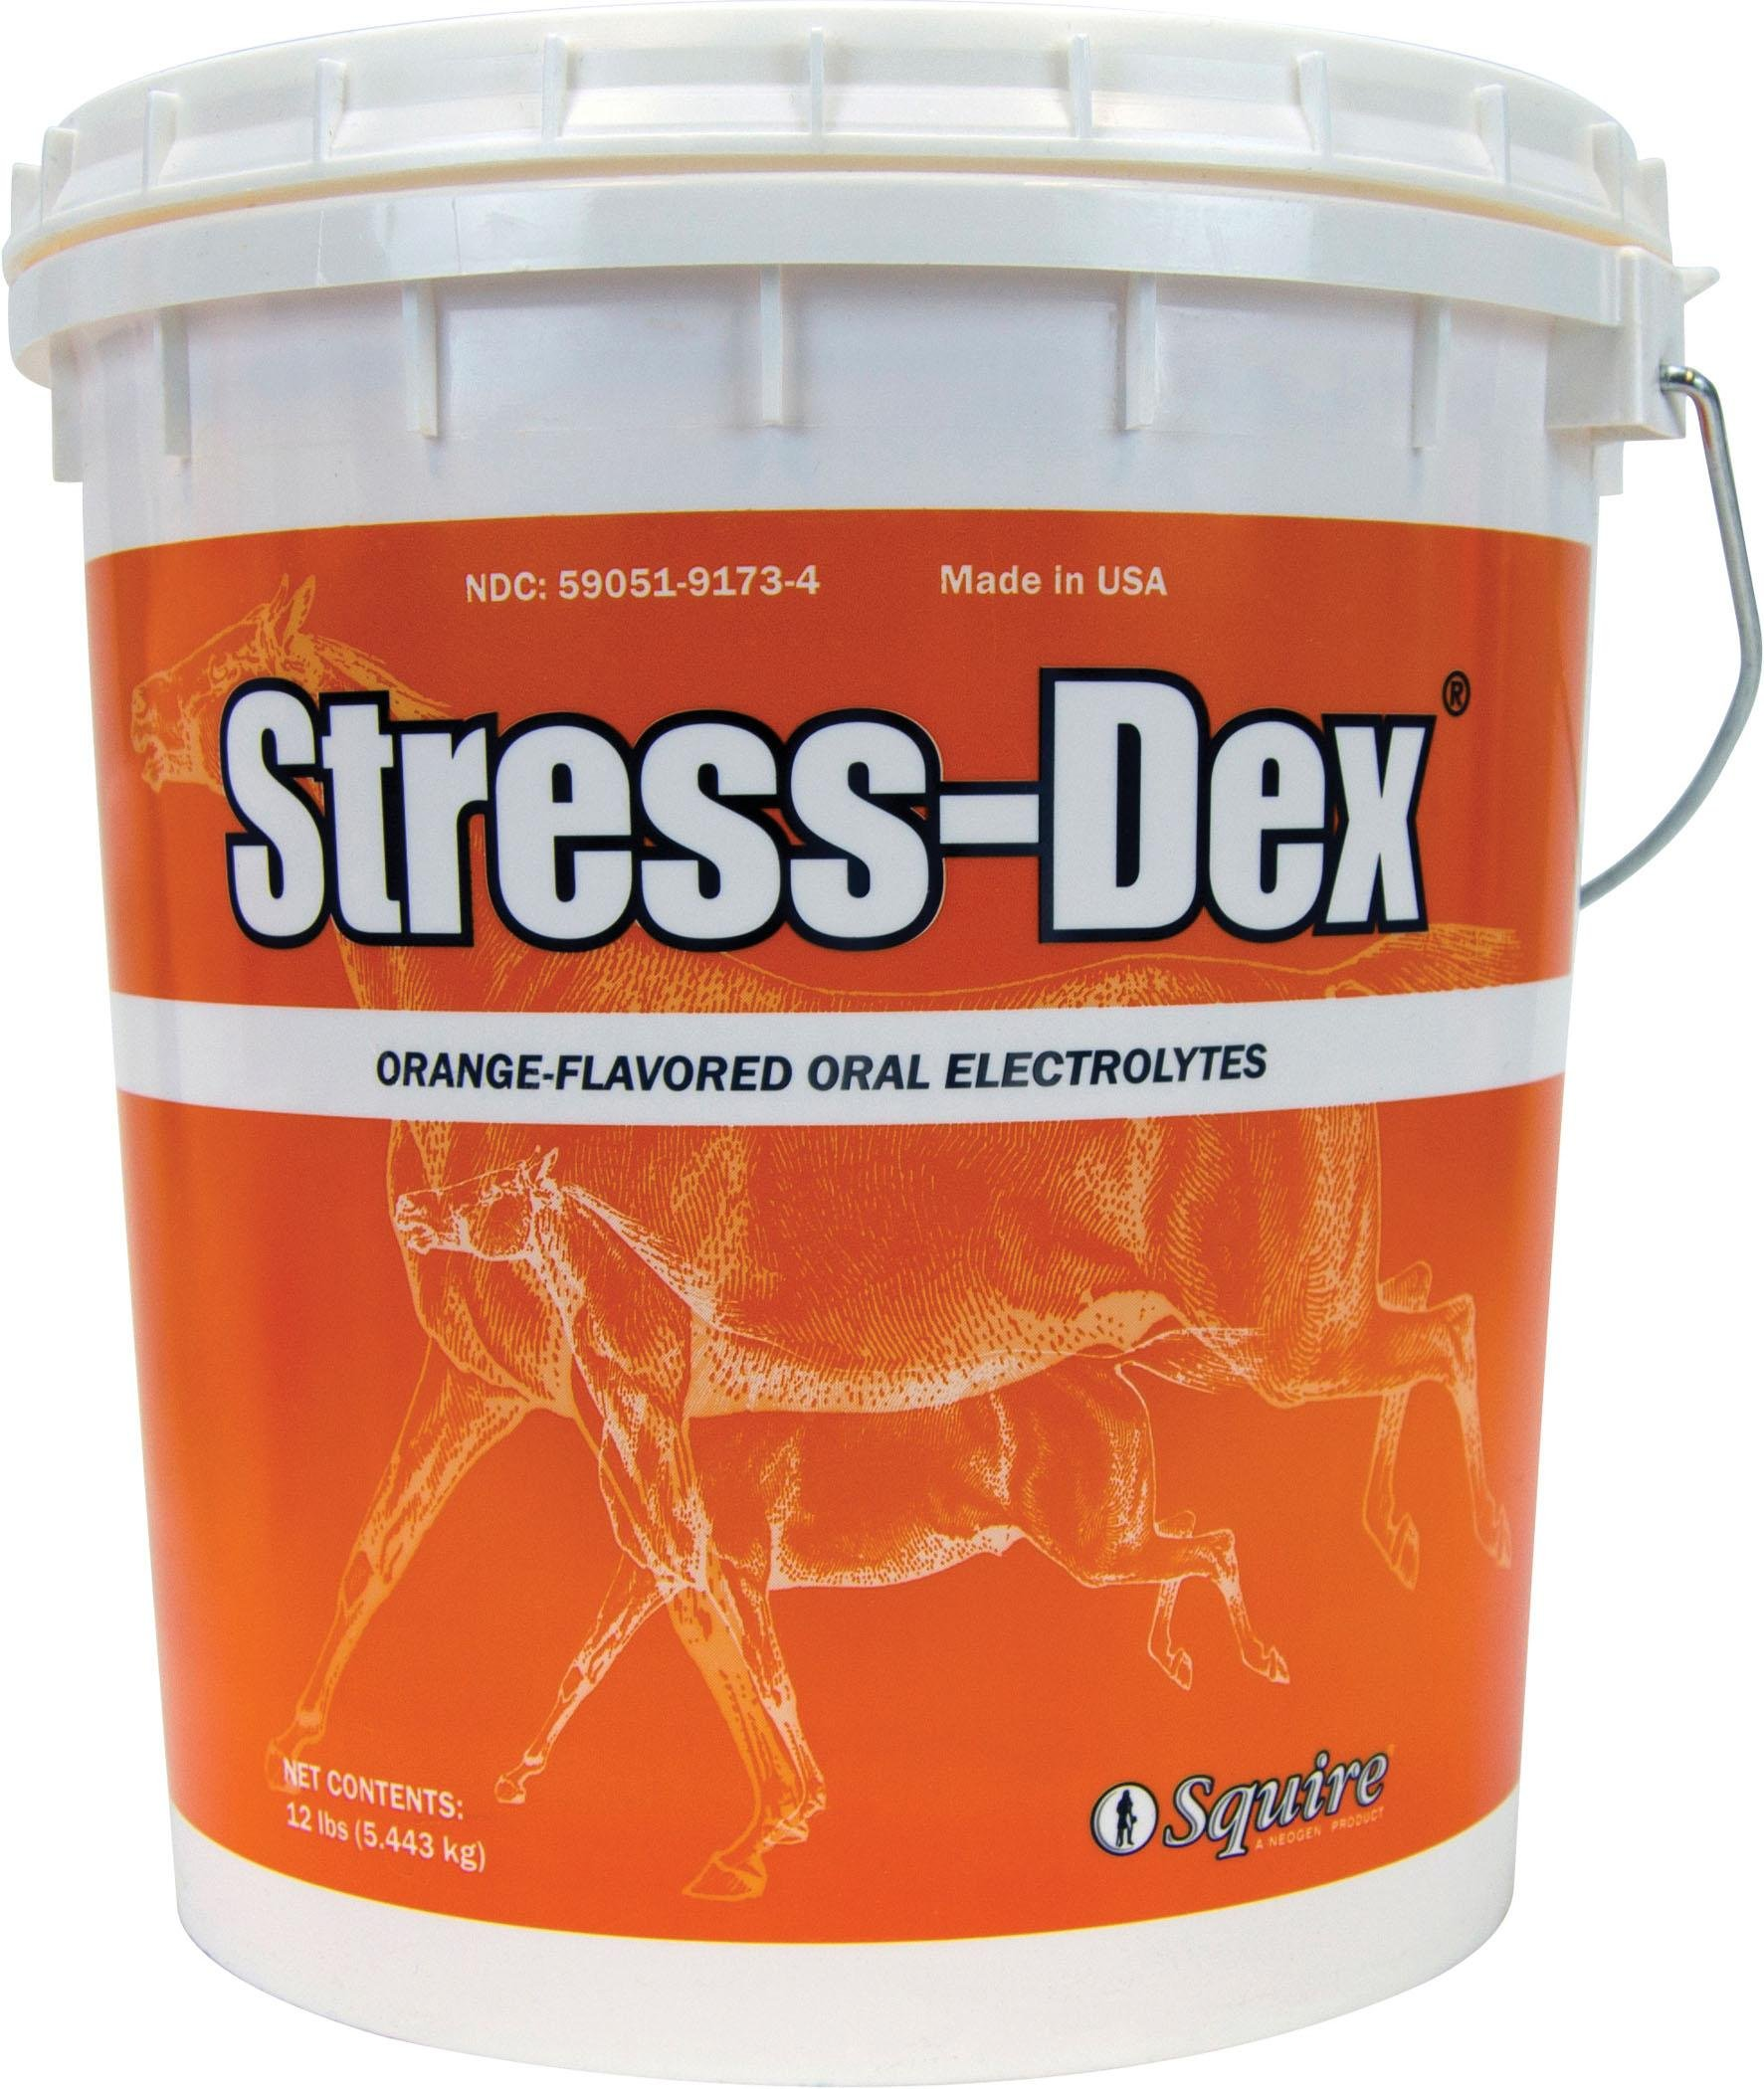 NEOGEN SQUIRE D Squire Stress-Dex Oral Electrolyte for Horses 12 Pound